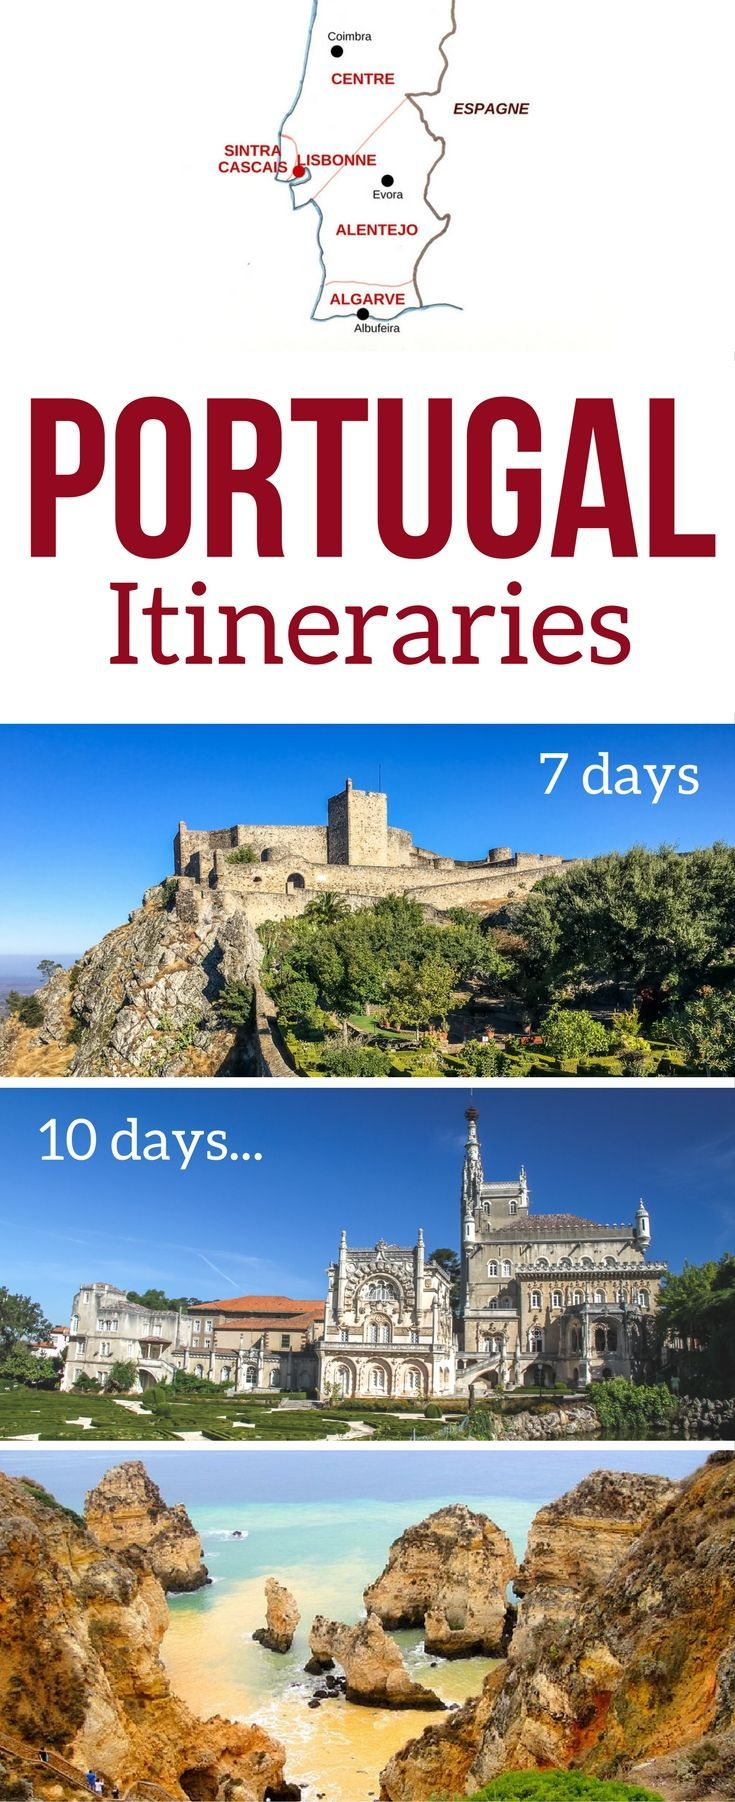 Portugal Travel Guide - Plan your Portugal Road Trip with Information and tips but Portugal itinerary suggestions for 7 days, 10 days and more - Lisbon to Porto, Algarve road trip etc | Portugal Algarve | Portugal things to do | Portugal Travel tips